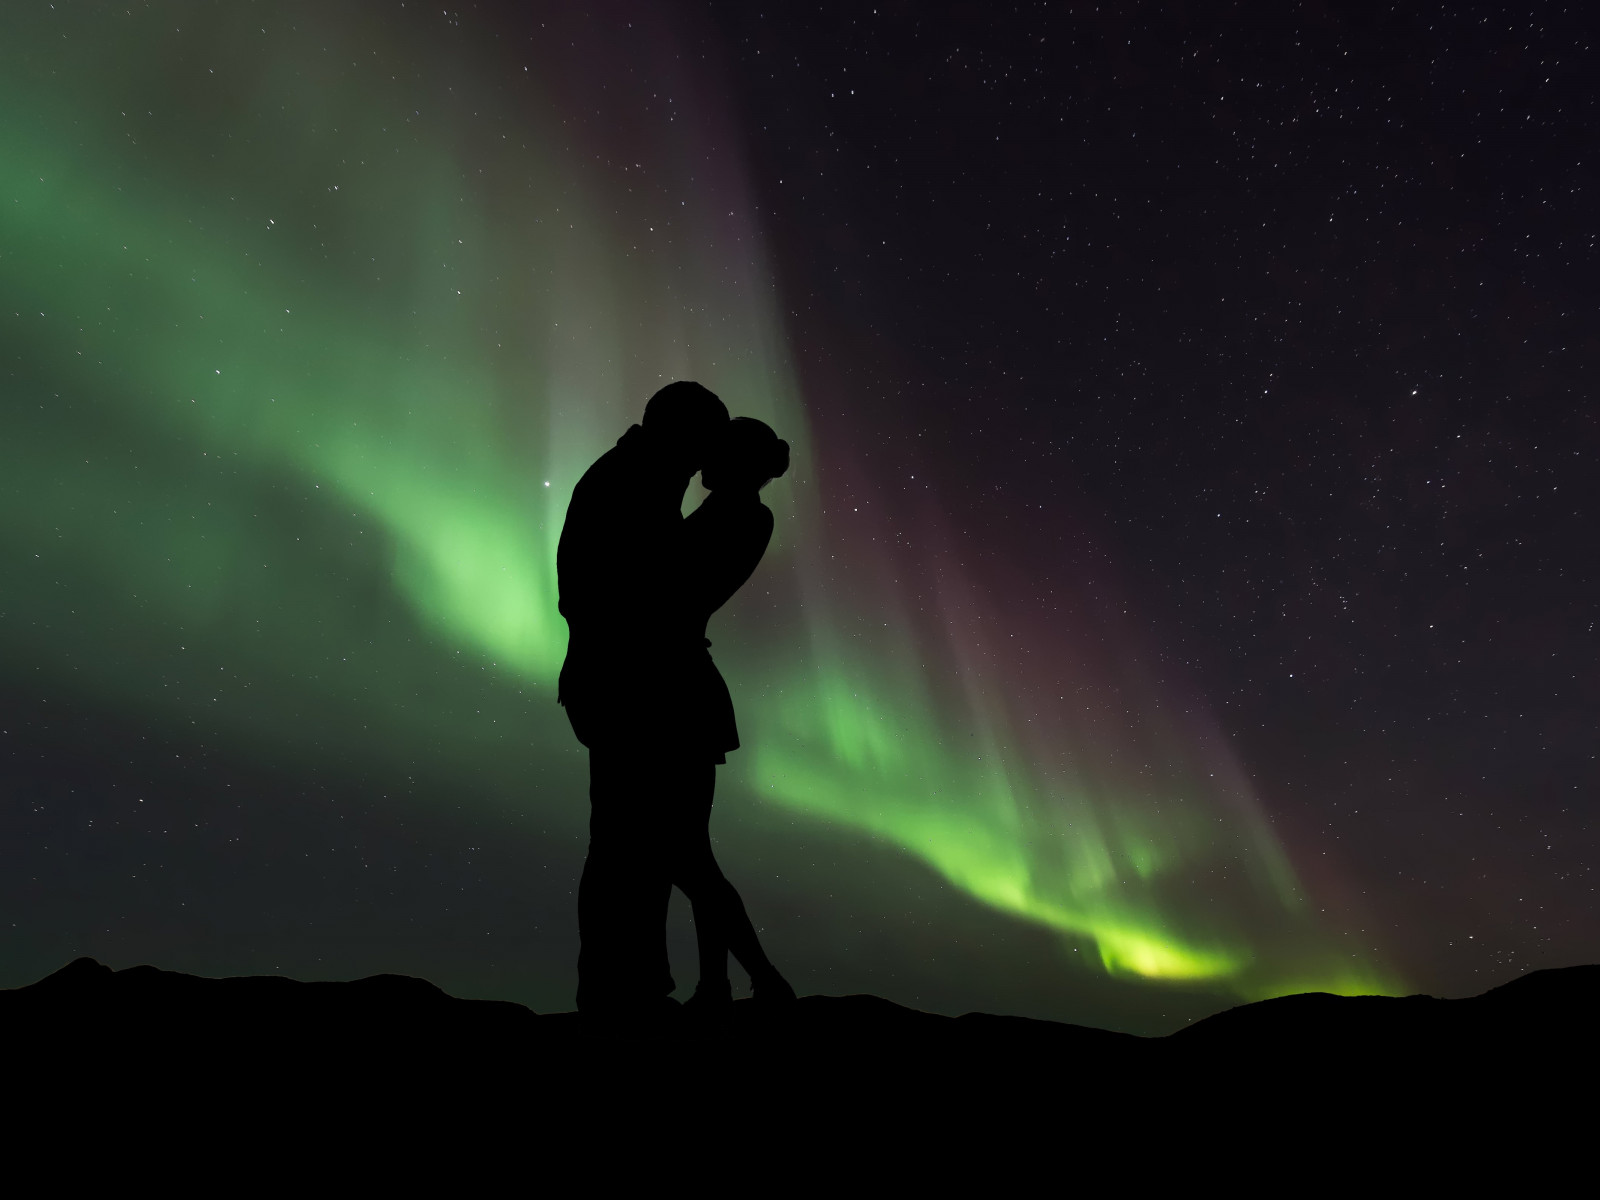 Couple in love under the Northern Lights wallpaper 1600x1200